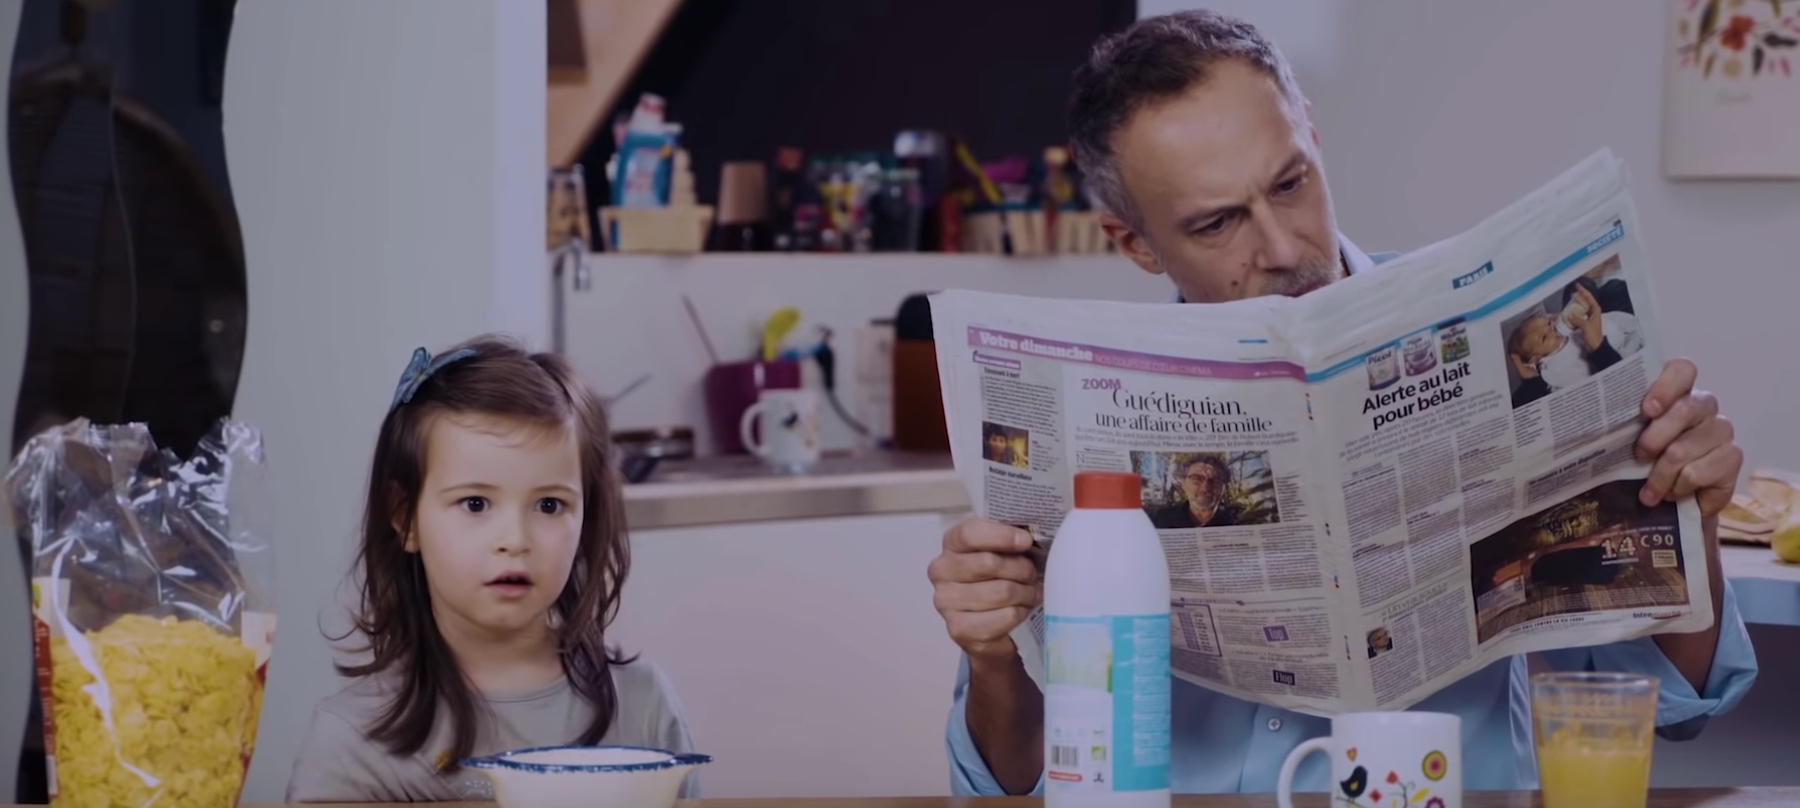 A little girl has breakfast with her father